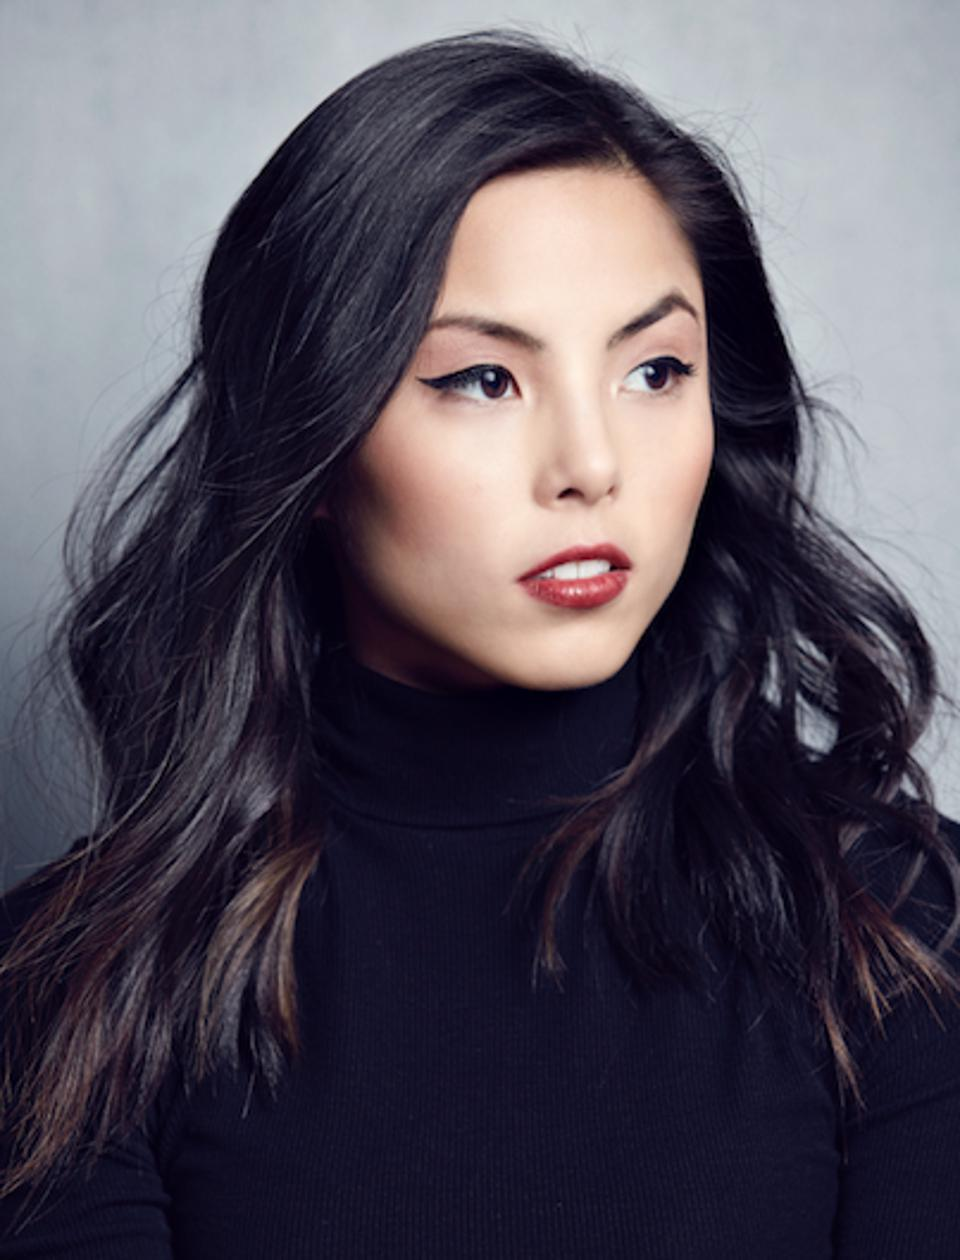 29-Year-Old Anna Akana Balances Comedy and Tragedy